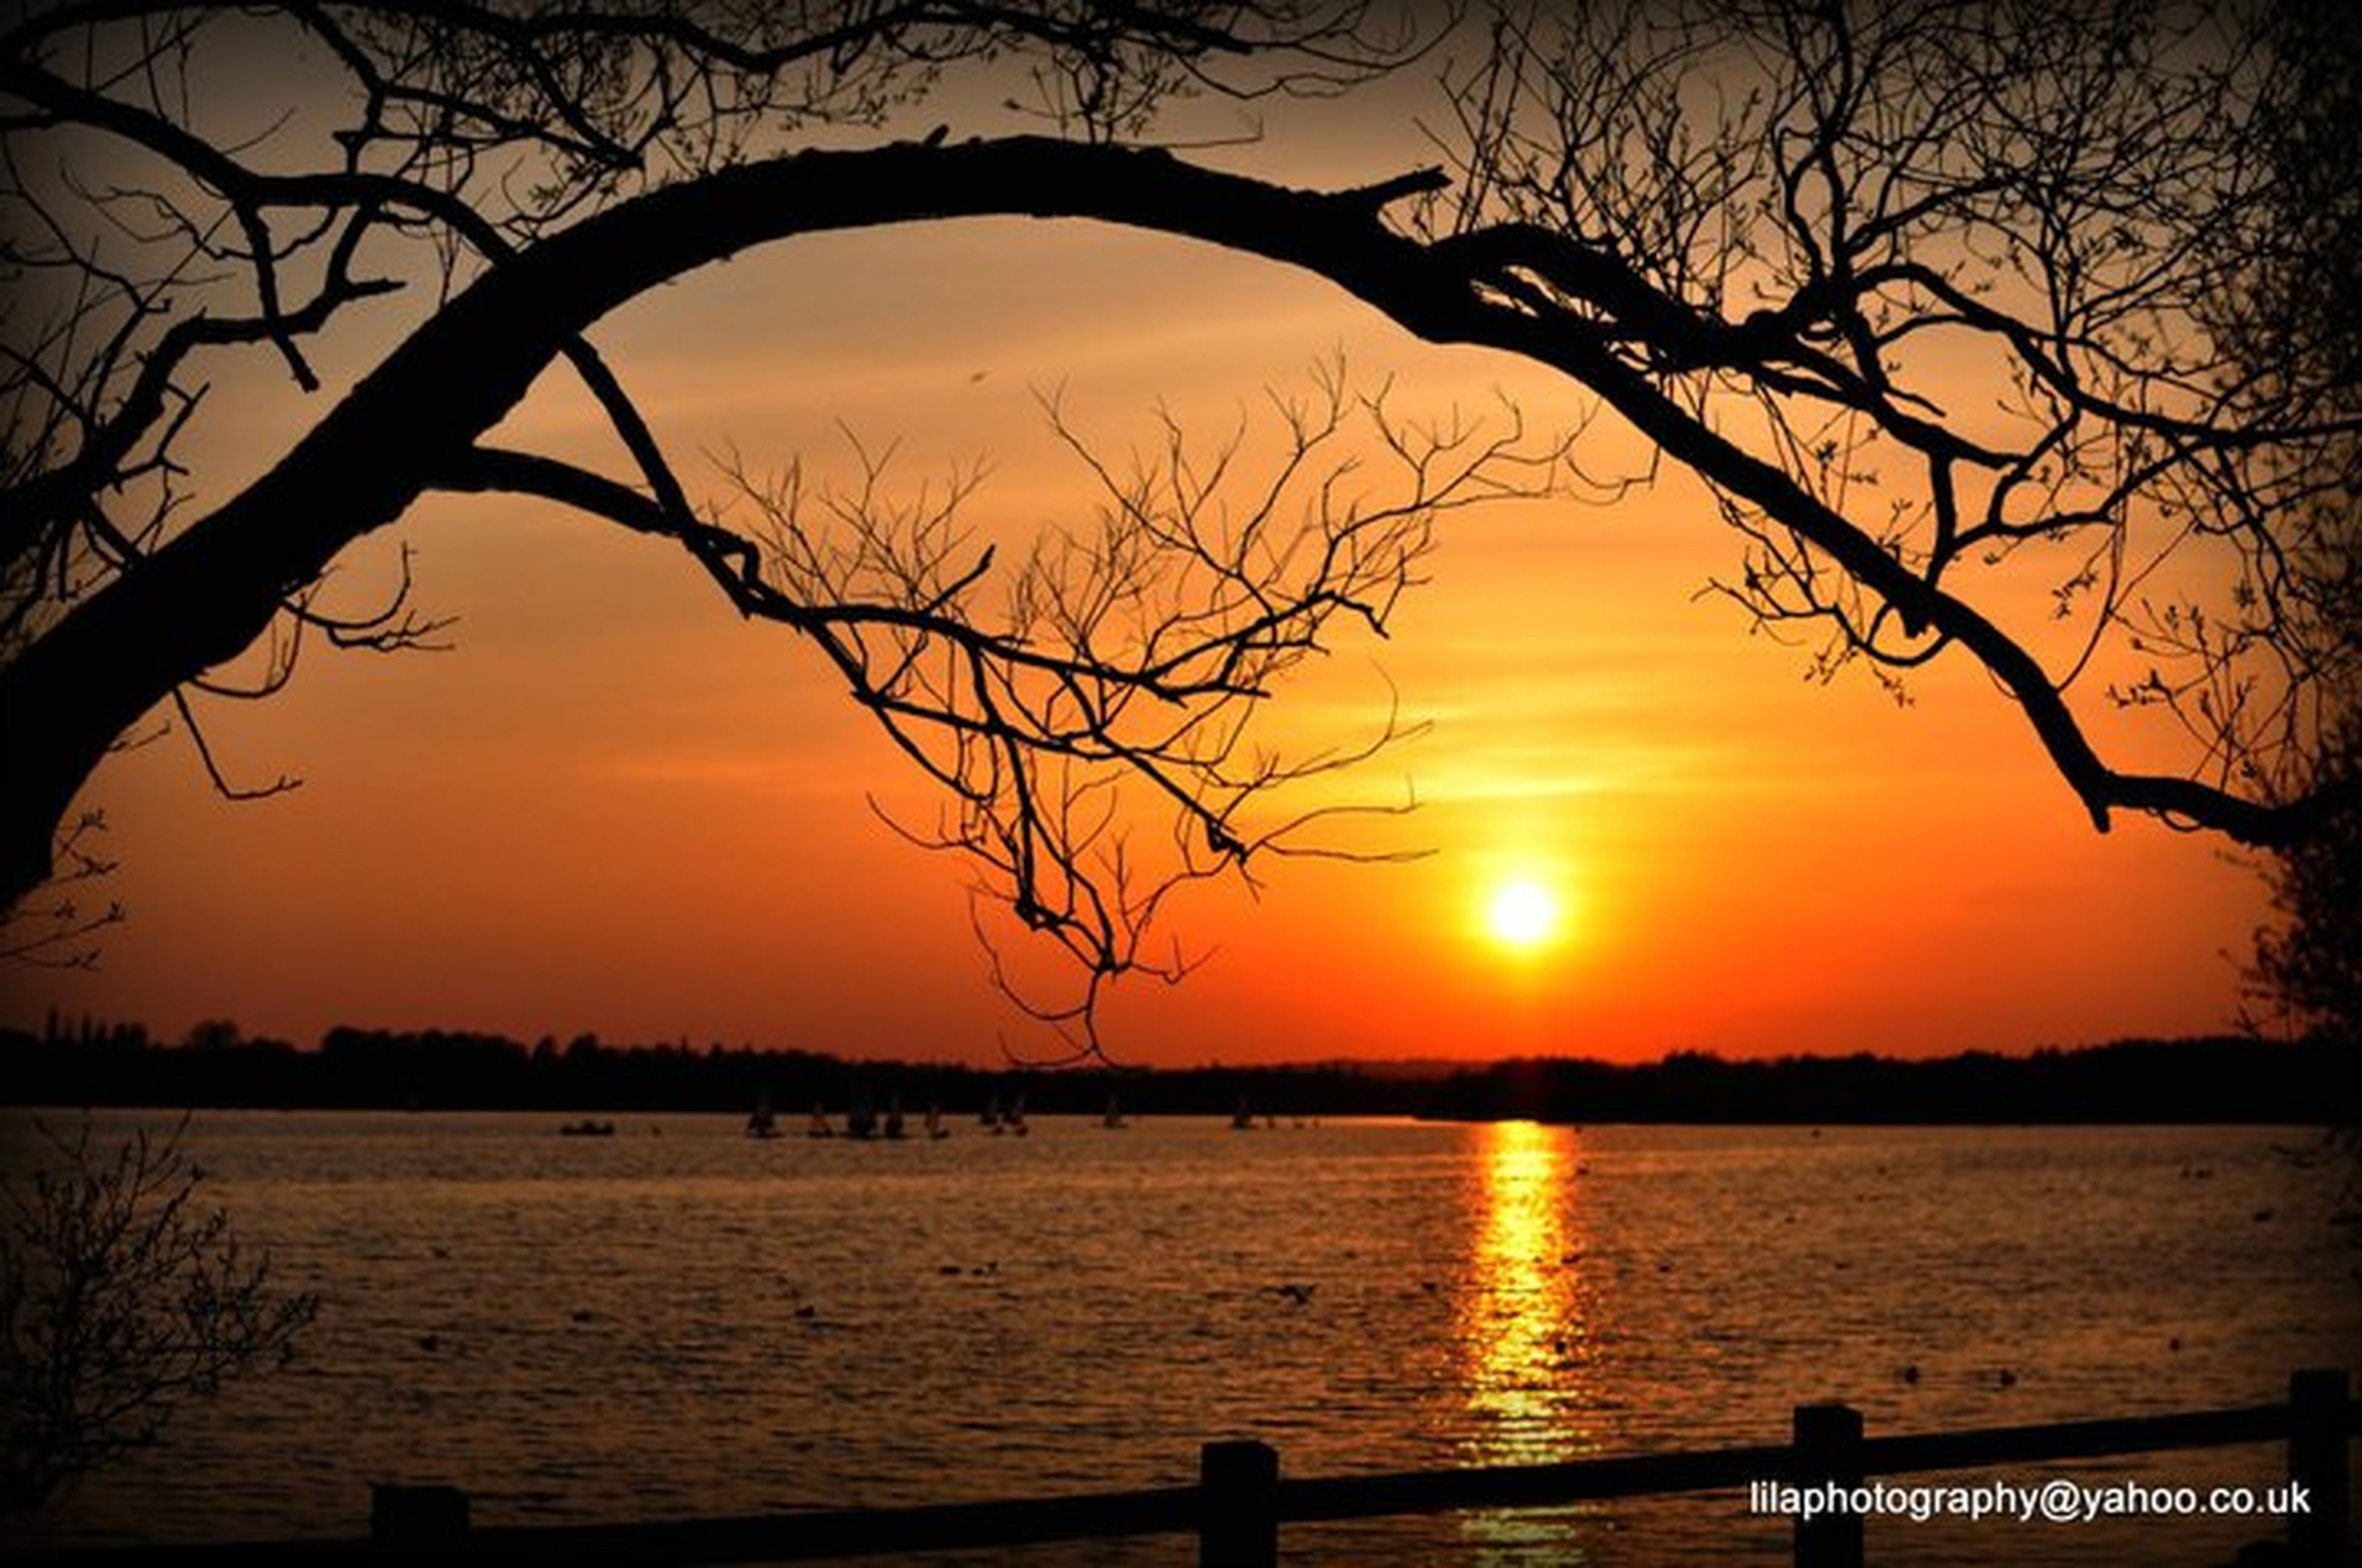 sunset, silhouette, water, bare tree, tranquility, scenics, tranquil scene, tree, branch, beauty in nature, lake, nature, sky, orange color, sun, idyllic, reflection, river, outdoors, tree trunk